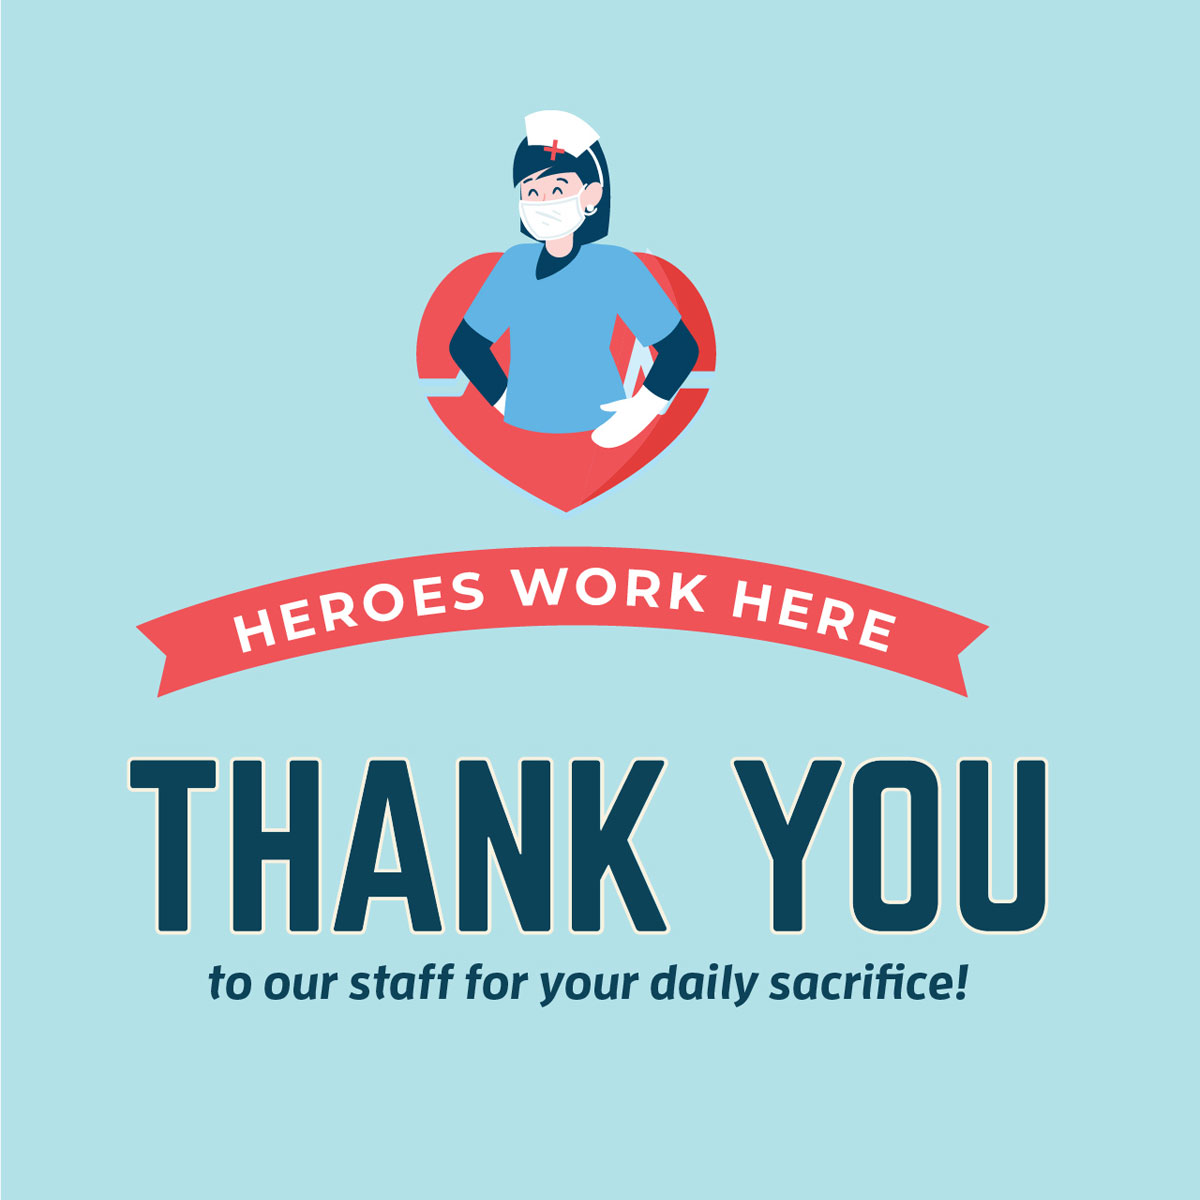 Heroes Work Here - Thank you to our staff for your daily sacrifice